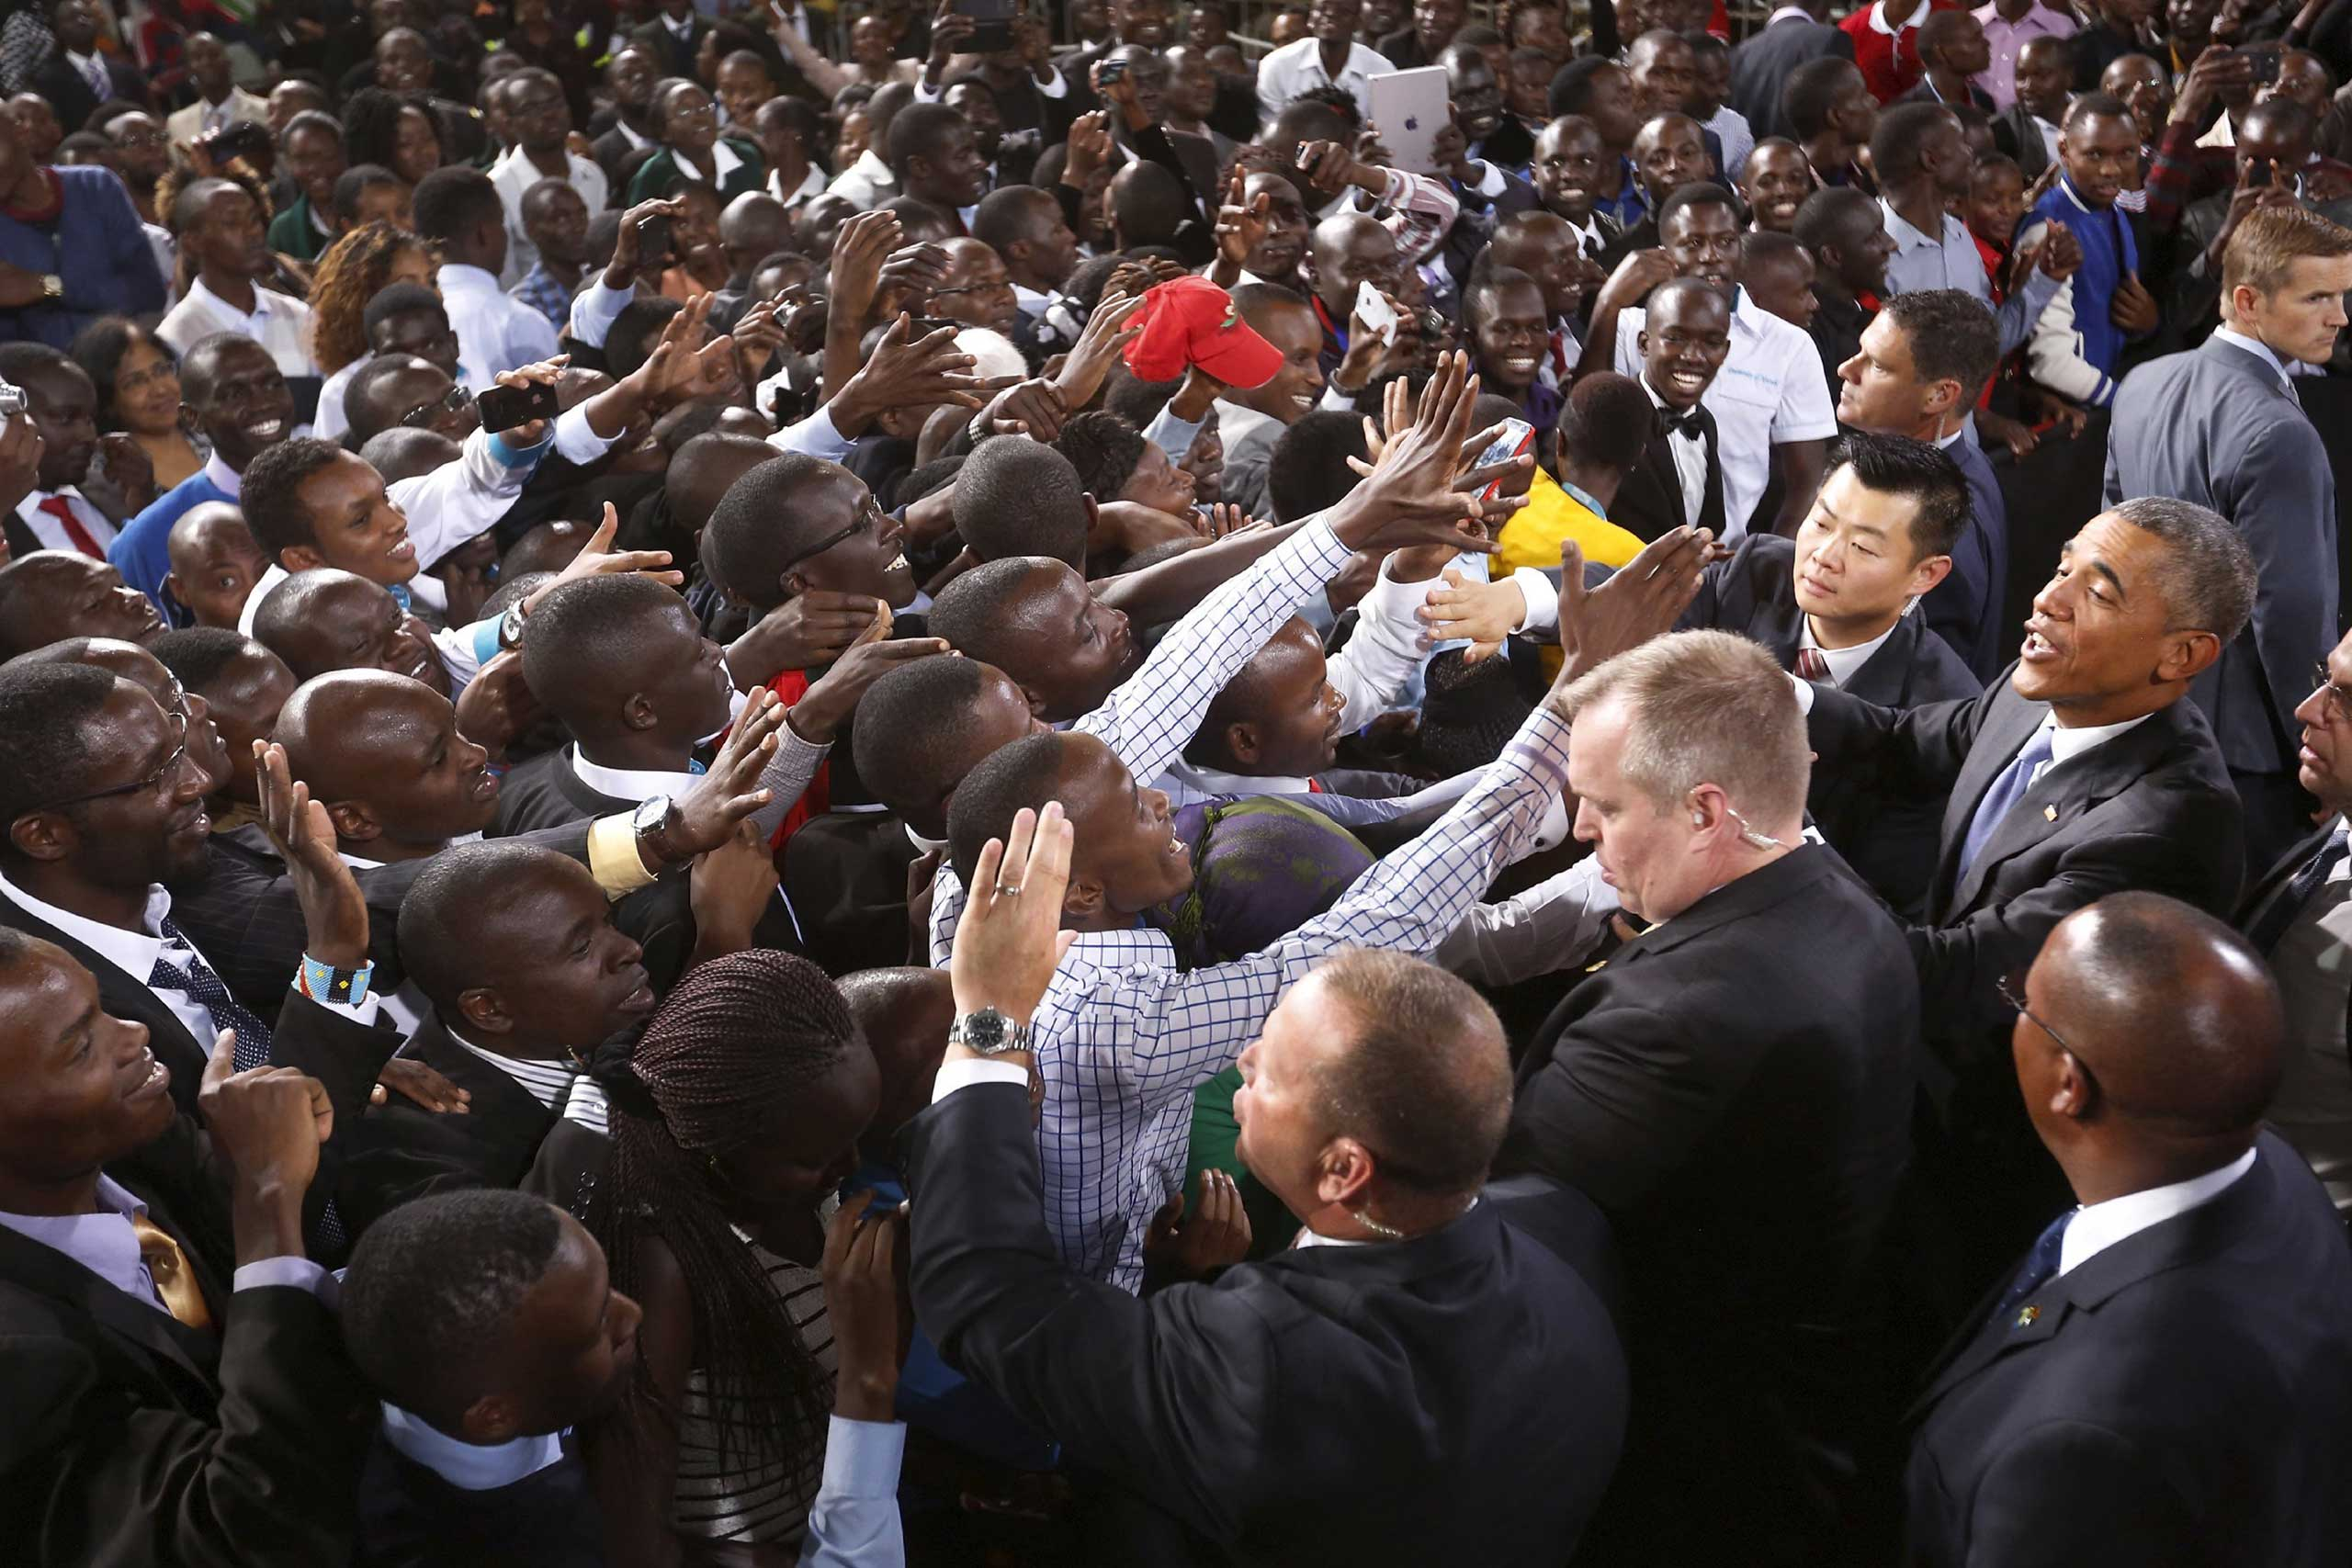 The crowd surges toward President Barack Obama as he greets the audience after his remarks at Safaricom Indoor Arena in Nairobi on July 26, 2015.